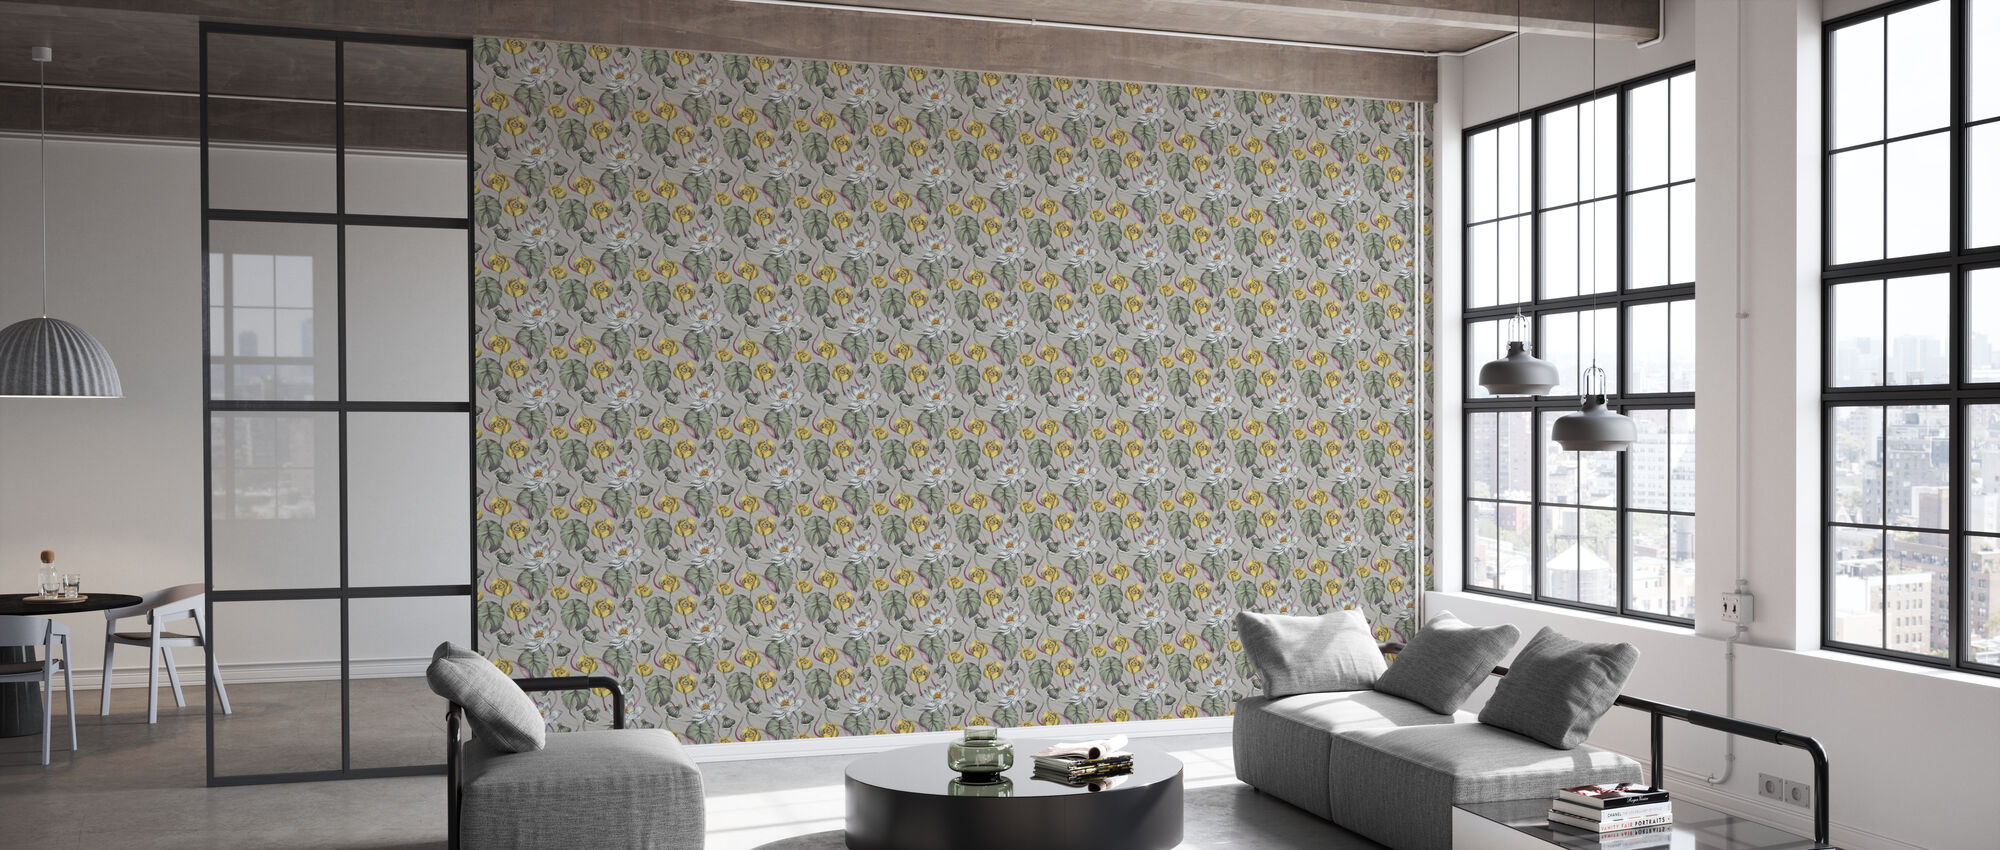 The Lily Pond Mist - Wallpaper - Office